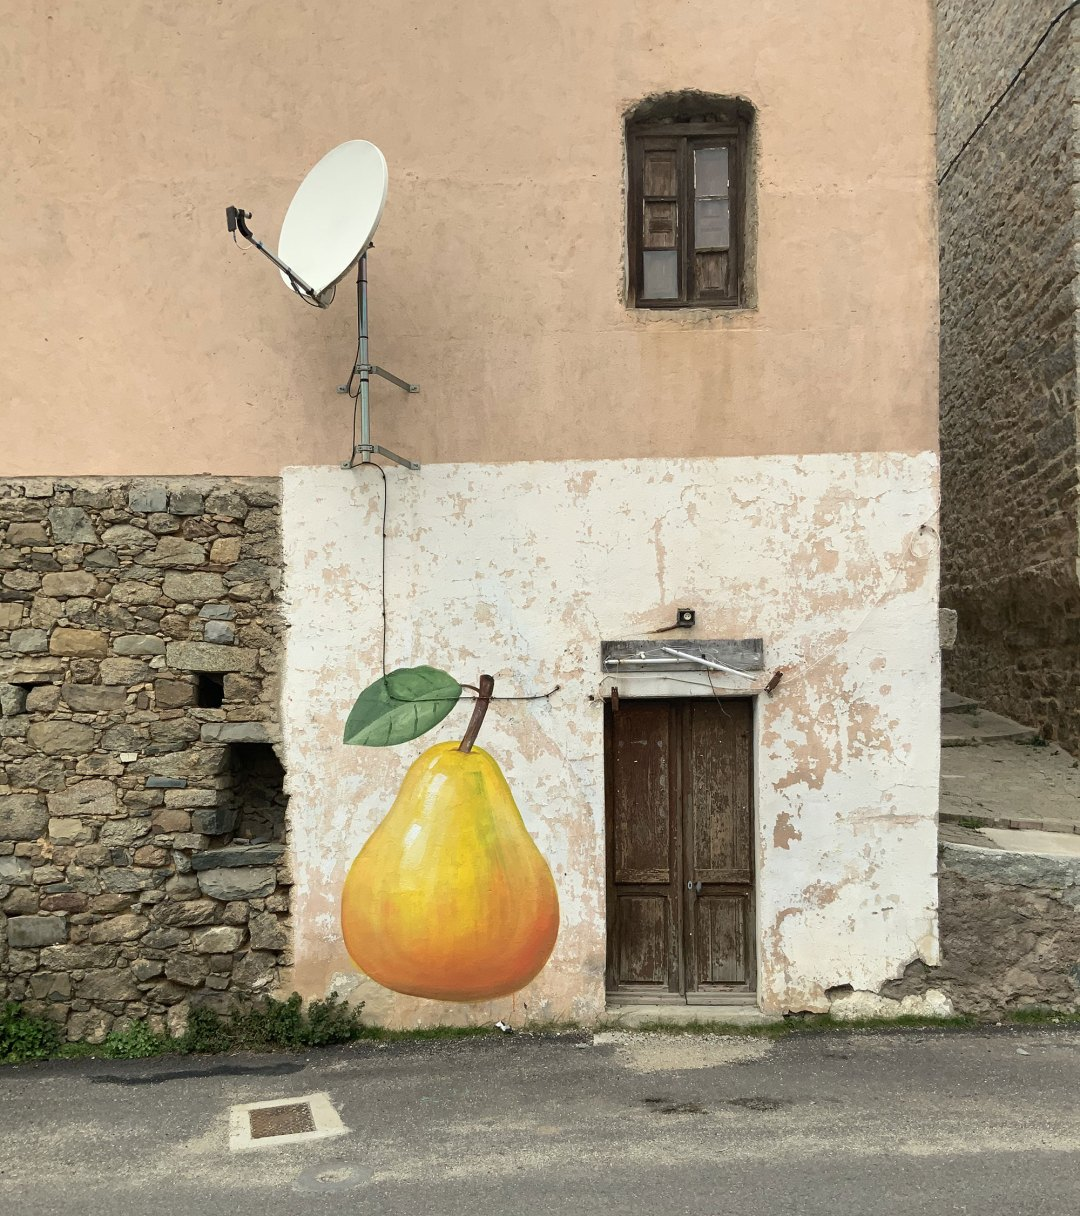 Candid Murals by Street Artist Escif Cleverly Respond to Political Issues and Current Events